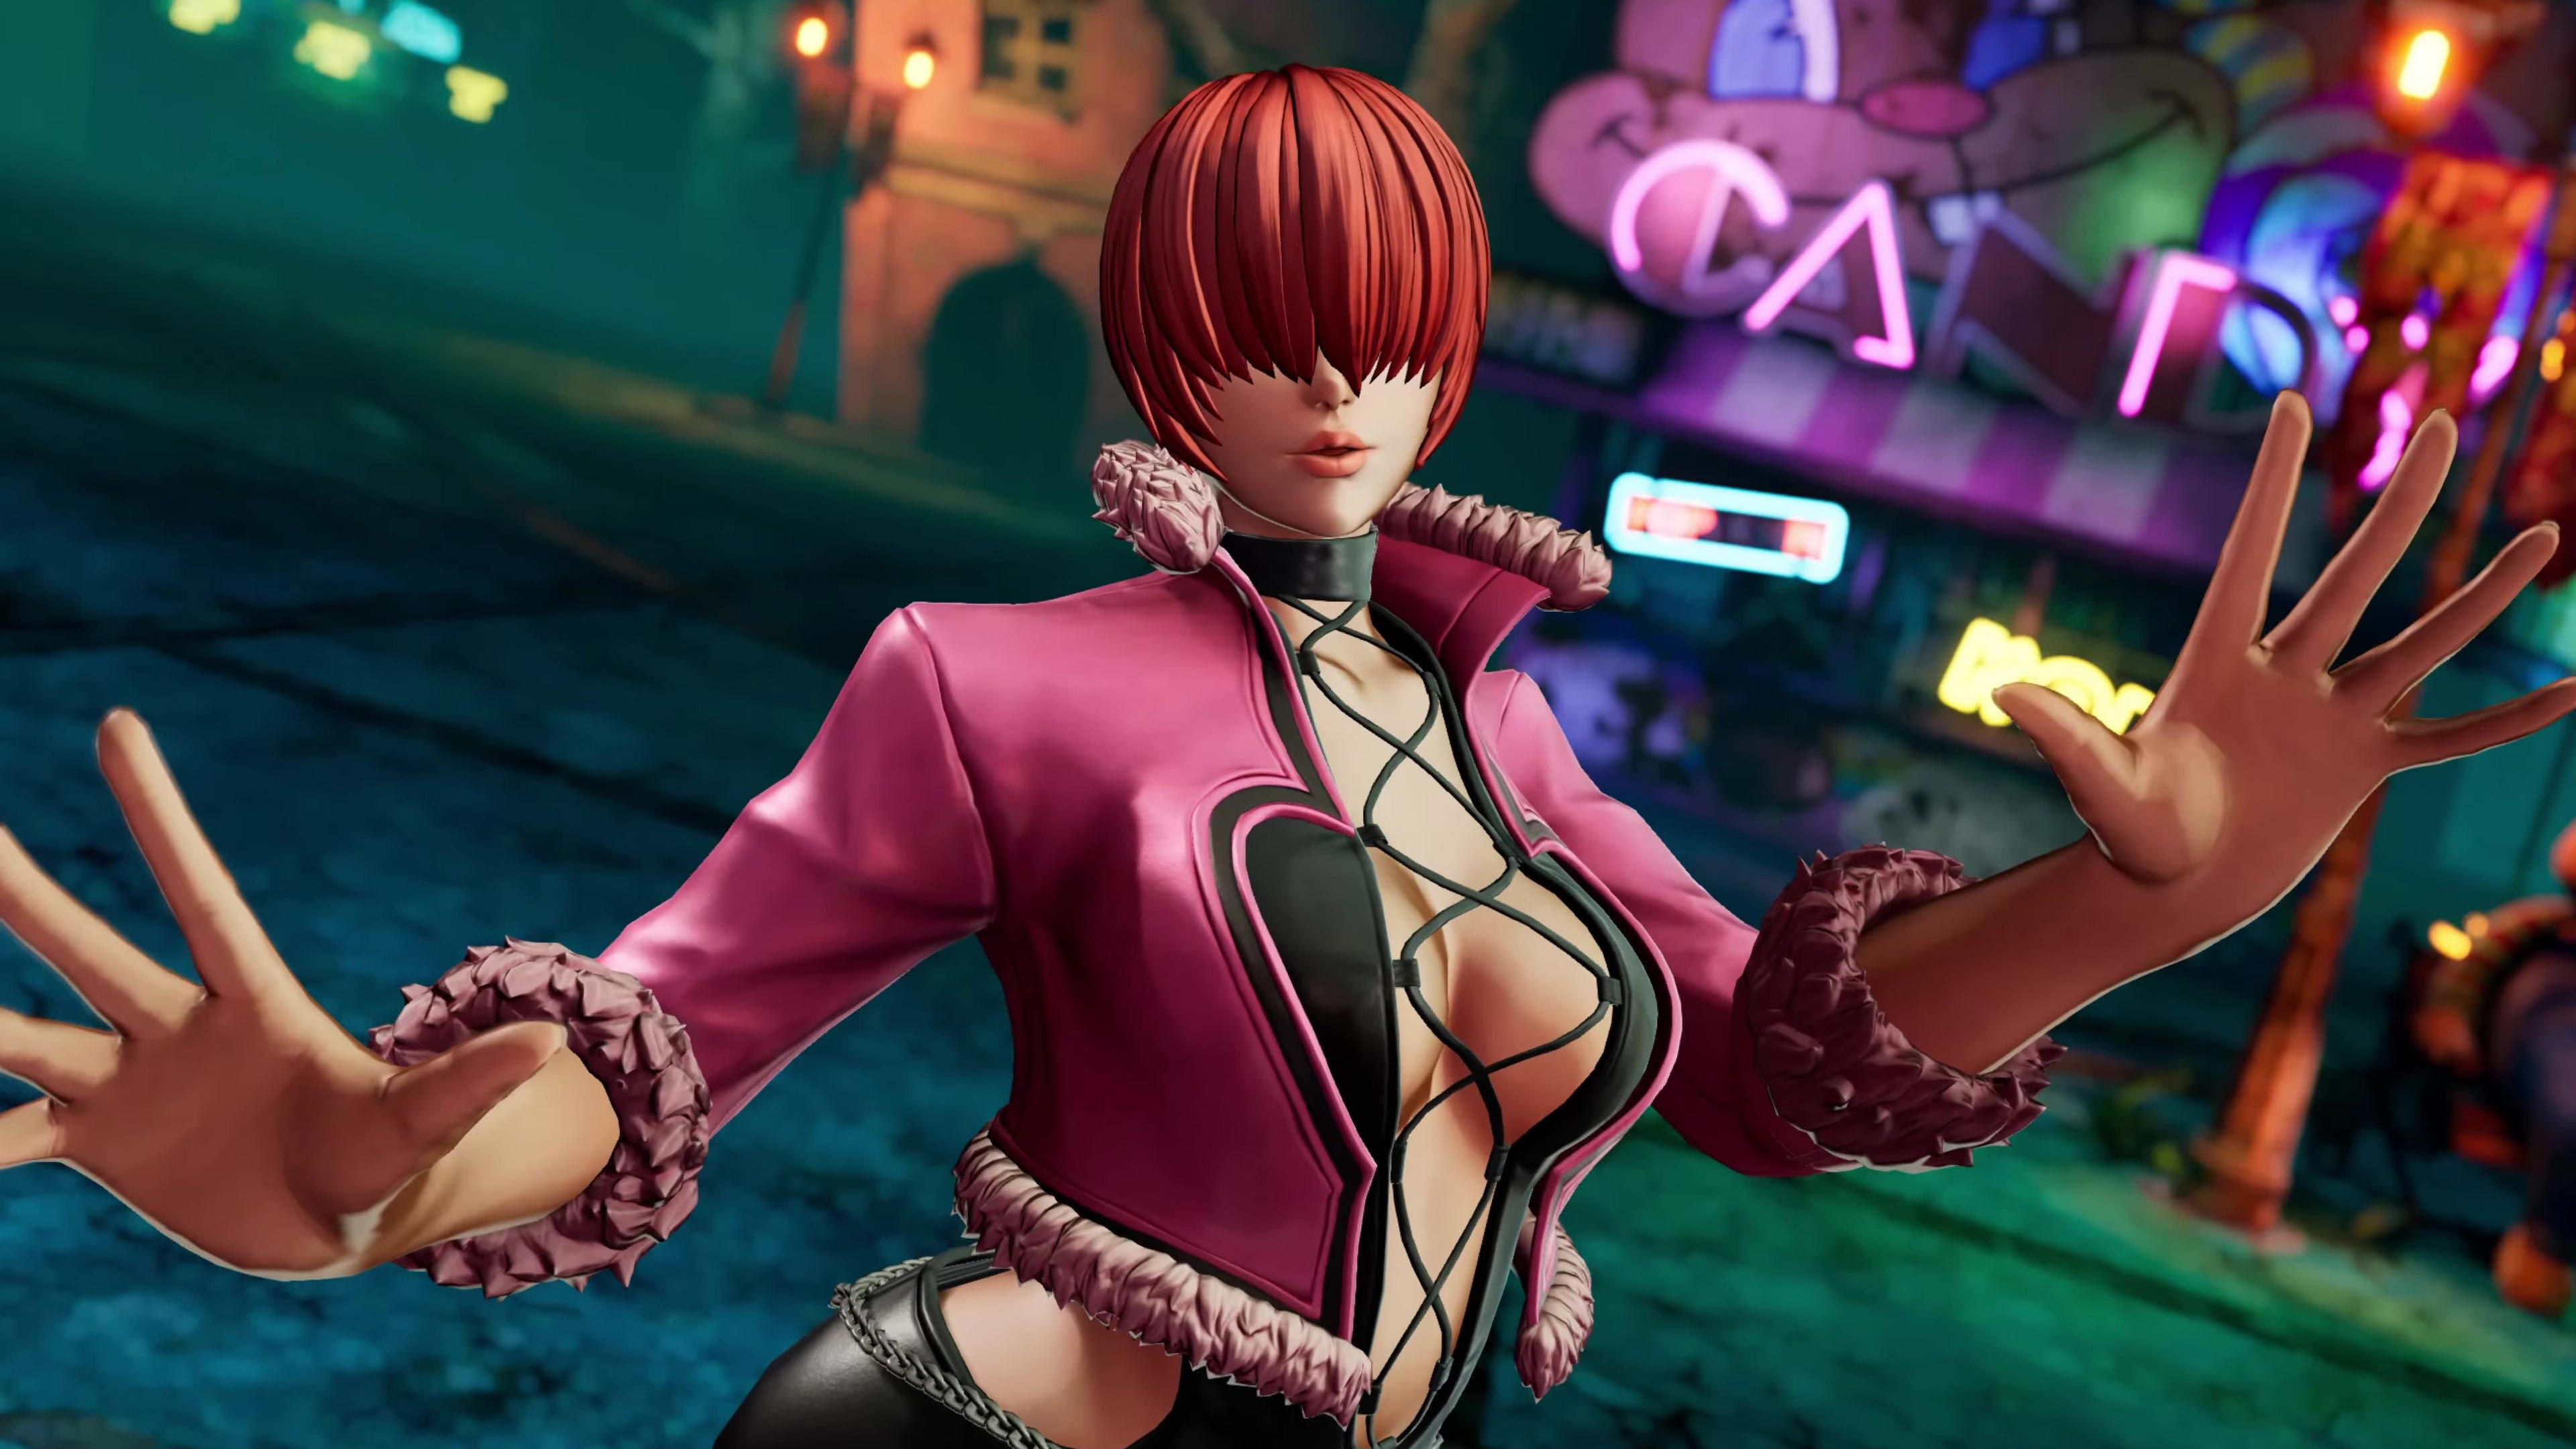 Shermie reveal 7 out of 9 image gallery